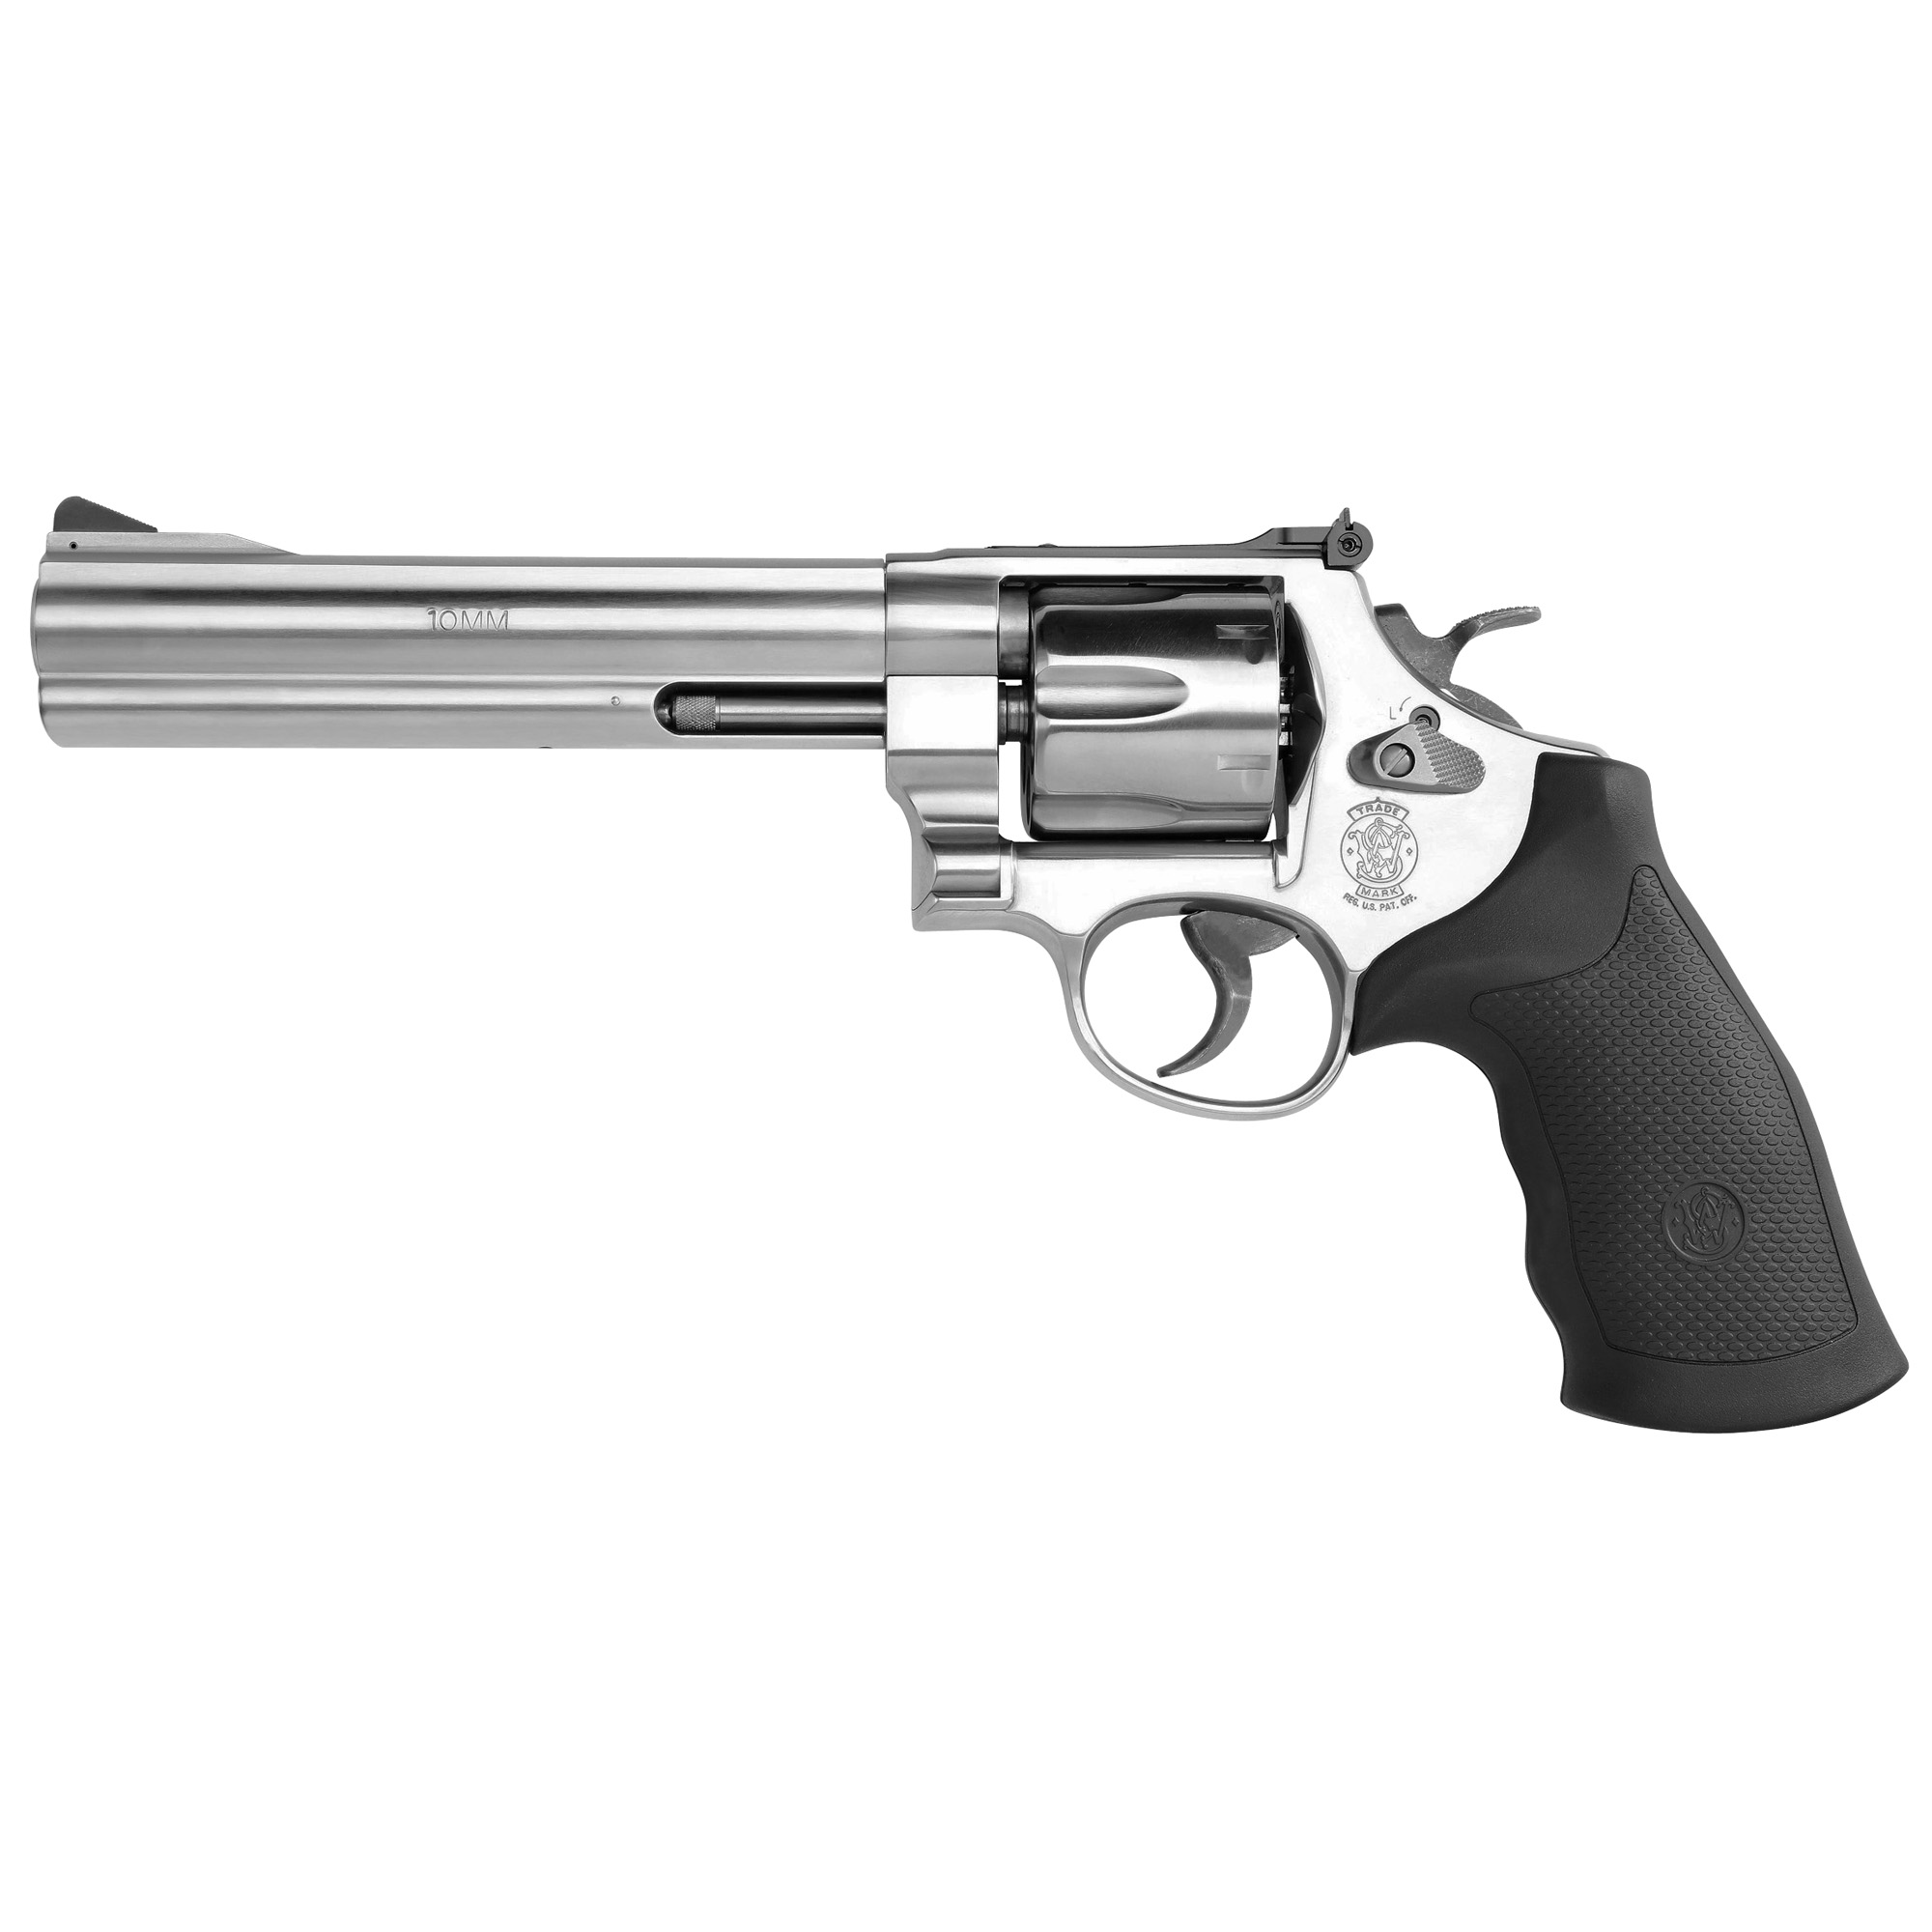 Smith & Wesson Model 610 Six Shot, 6-1/2 inch, 10mm